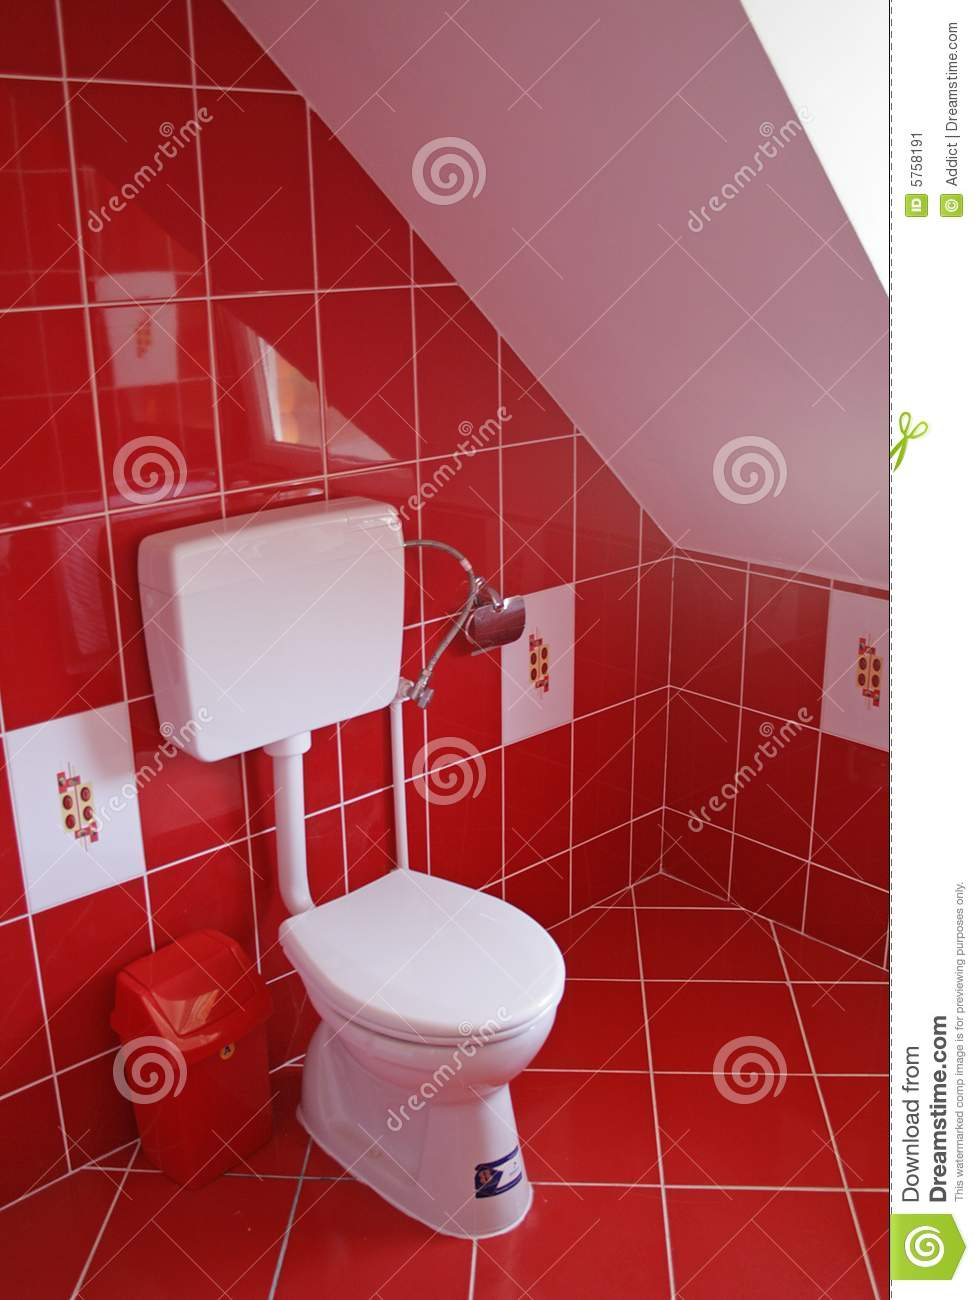 Red bathroom stock image image of handle hard bathrooms 5758191 - Red bathroom pictures ...